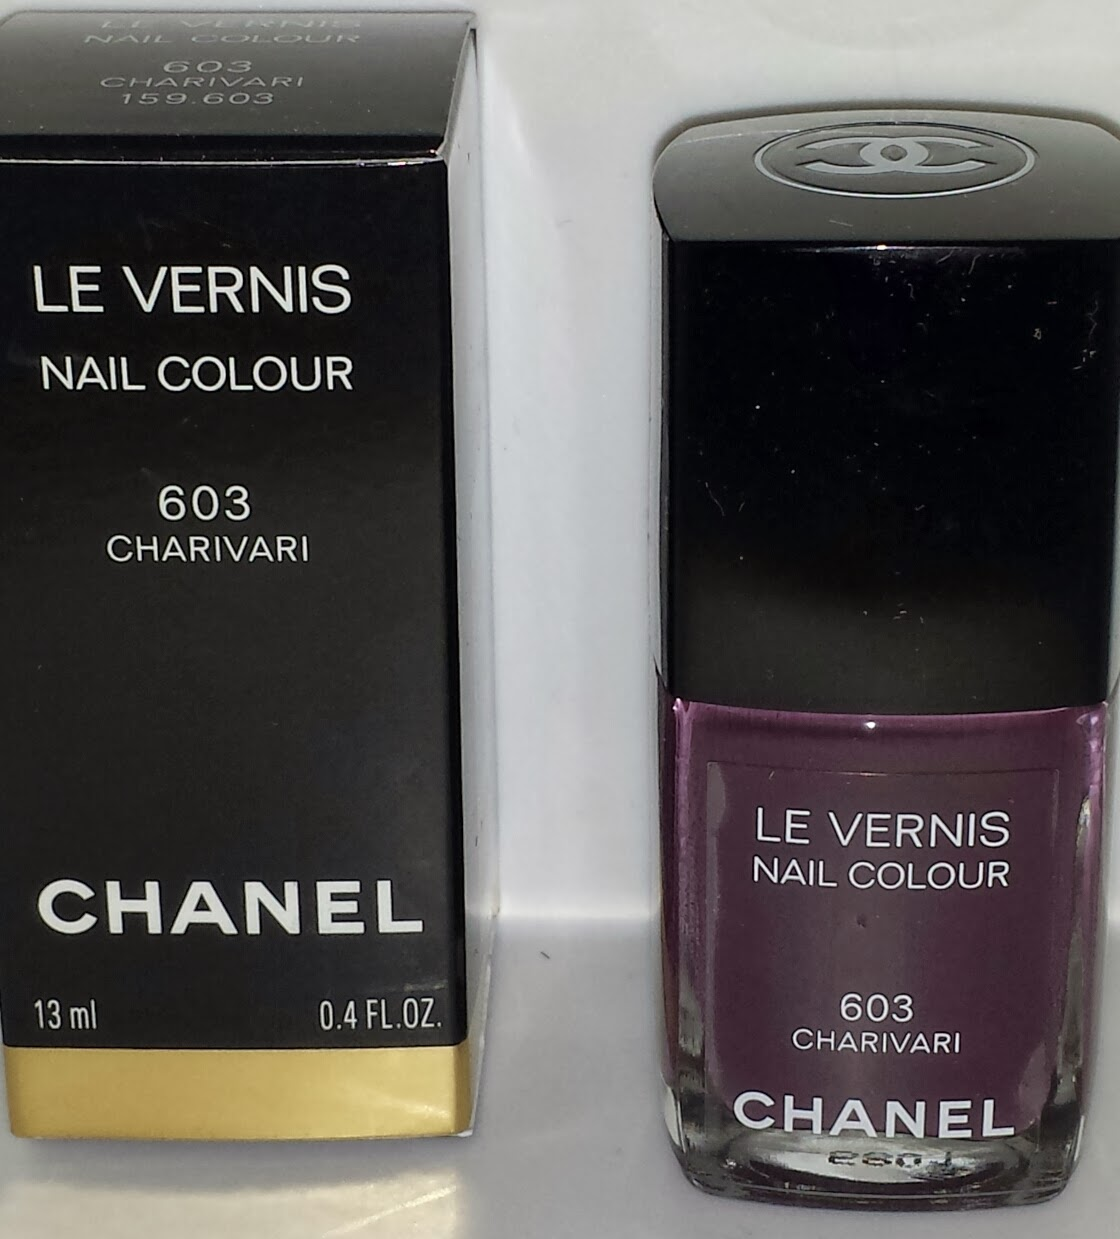 Jayded Dreaming Beauty Blog : 603 CHARIVARI CHANEL LE